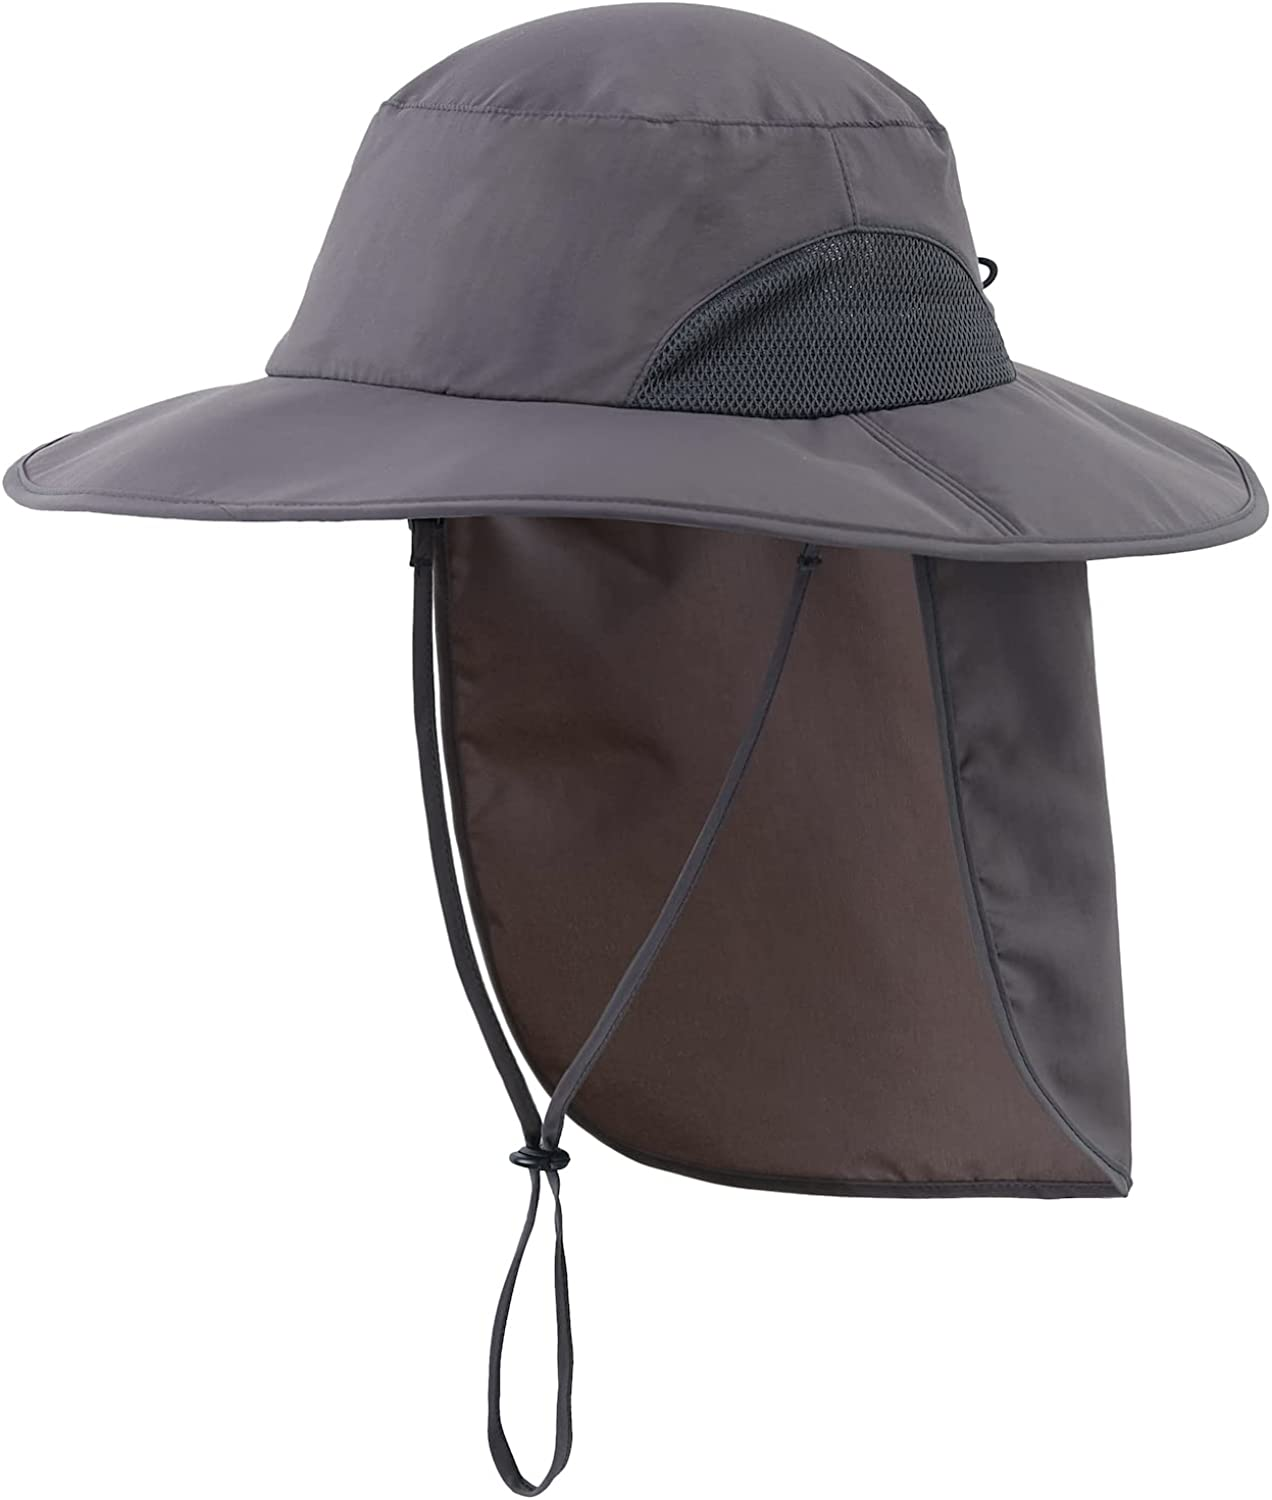 Home Prefer Outdoor Mens UPF50+ Sun Hat Wide Brim Fishing Hat with Neck Flap